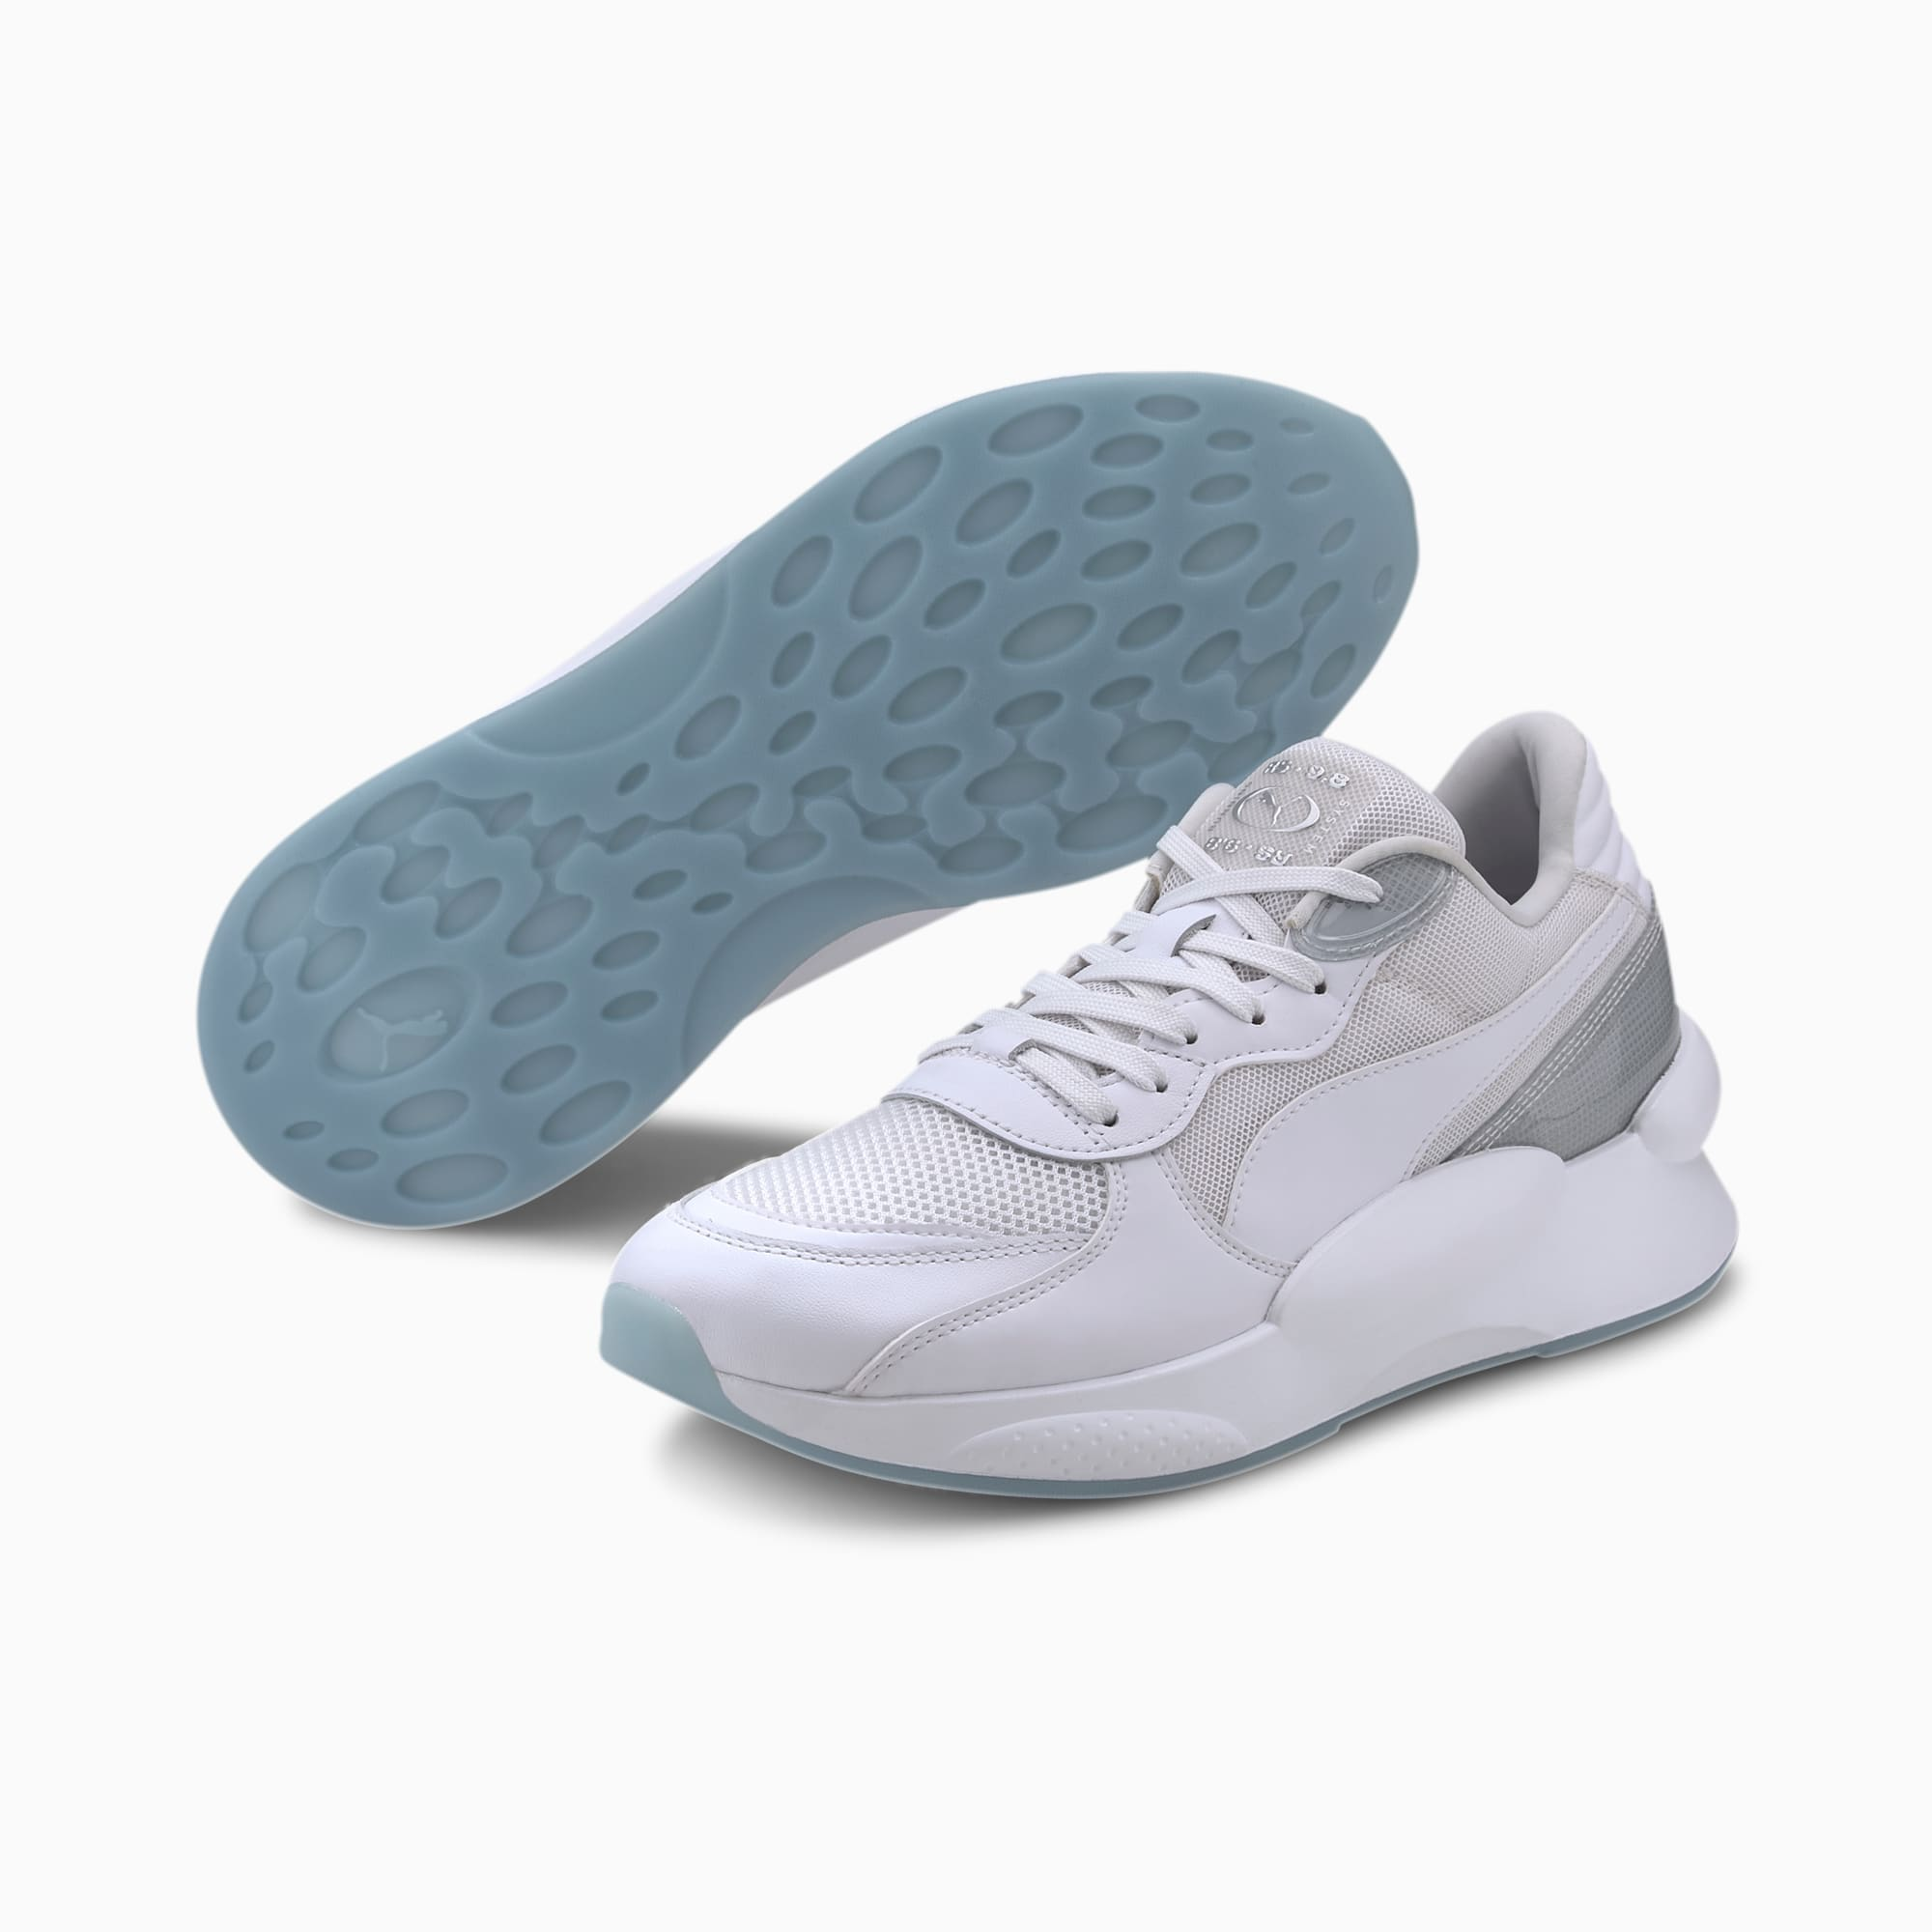 RS 9.8 Grid Trainers